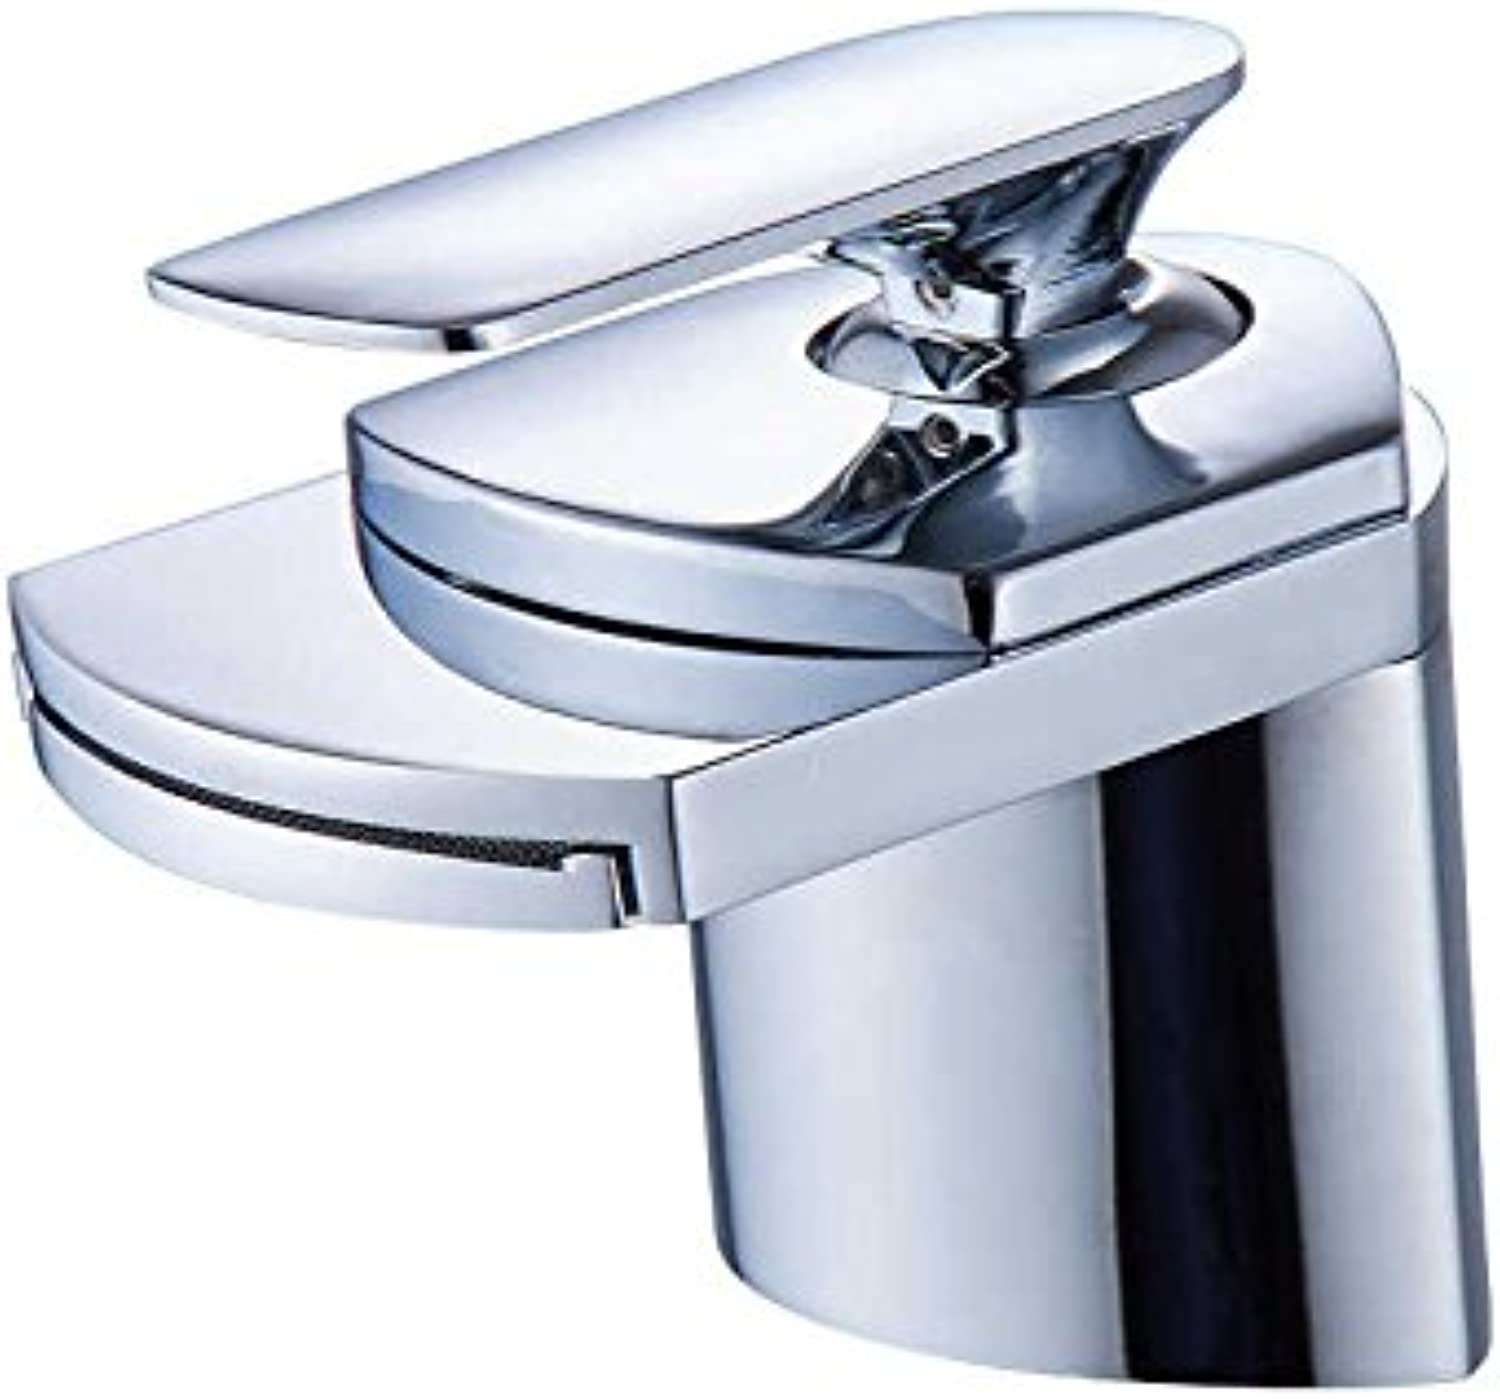 YAWEDA Faucet Single Hole Hand Washing Single Hole Single Cooling Antique Platform Basin Basin Kitchen Faucet Bathroom Black Bathroom Cabinet Water Valve Cold Water Faucet Plating Short